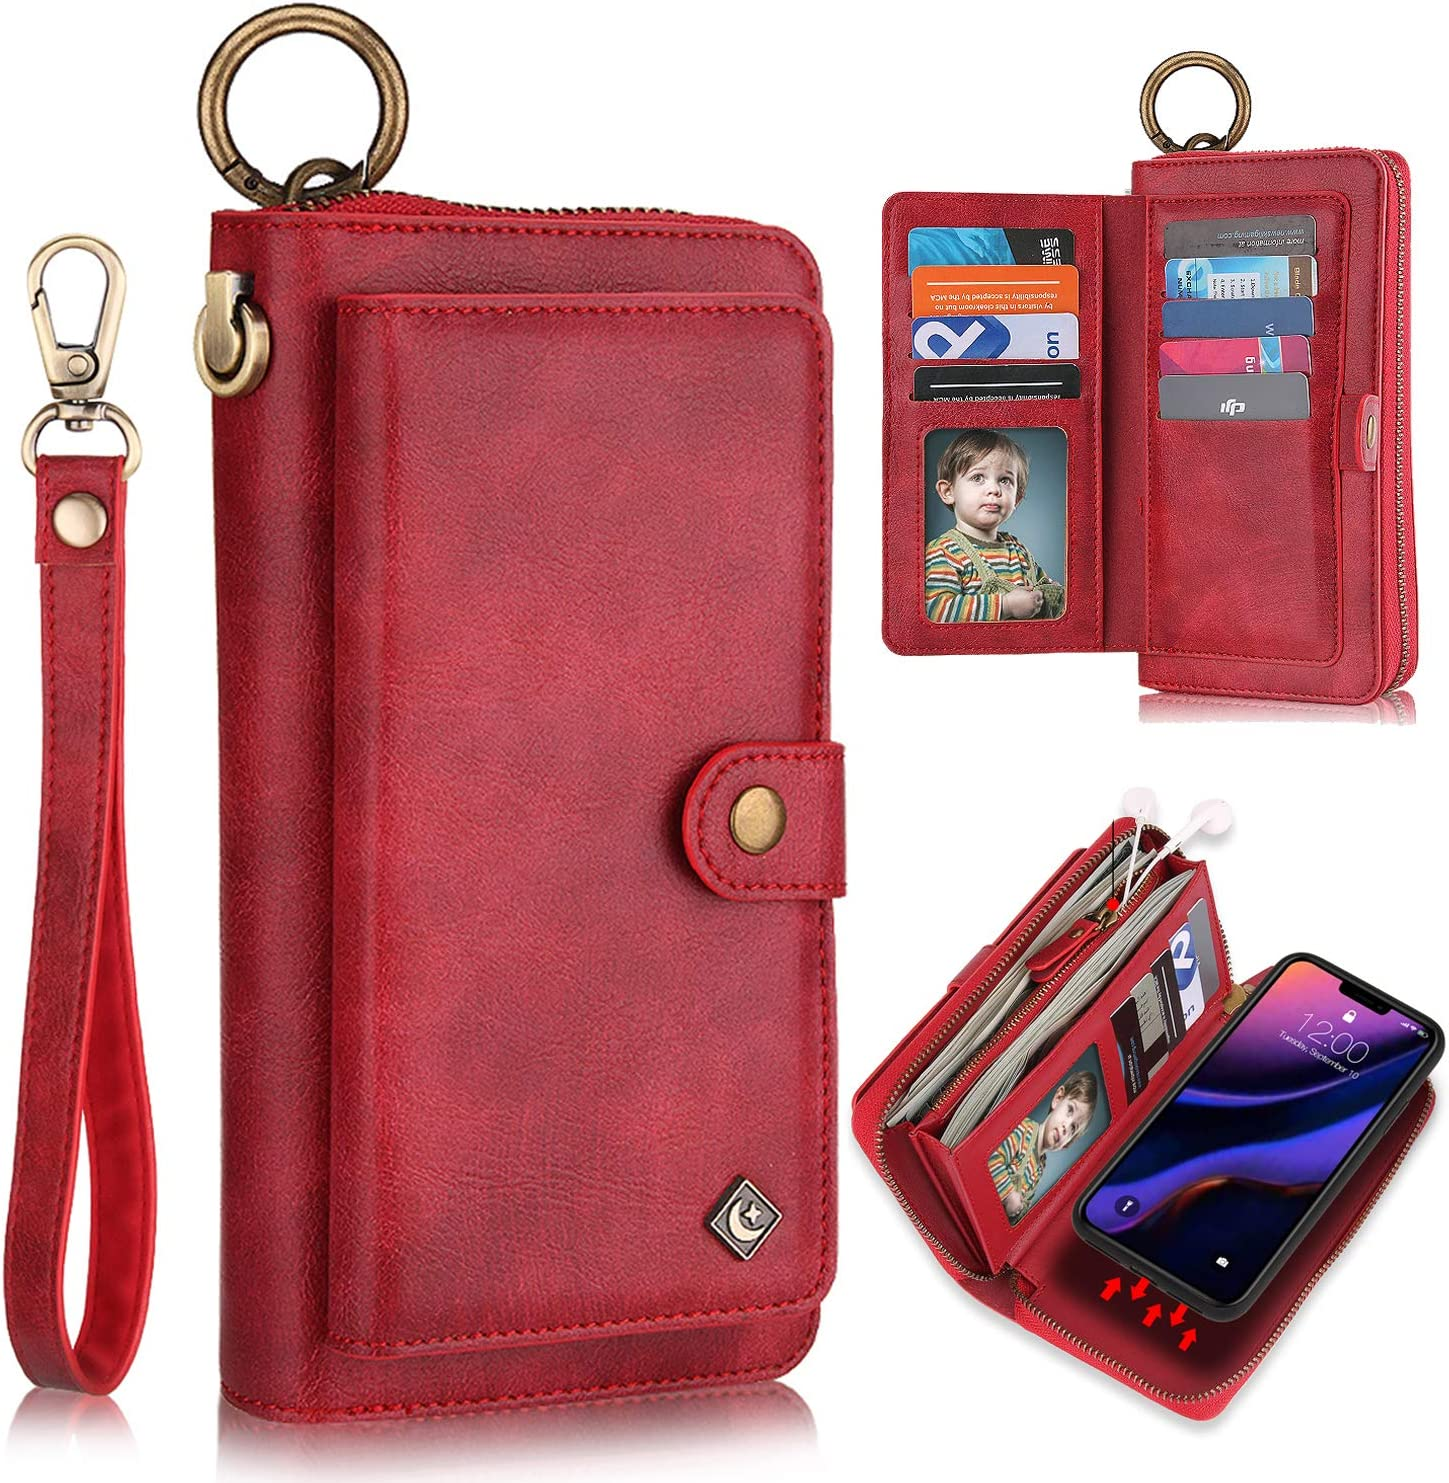 XRPow Wallet Case iPhone 11 Pro Max 6.5Inch [2 in 1] Magnetic Detachable Wallet Case [Vegan Leather] Zipper Clutch Folio Flip Card Solt [Wrist Strap] Purse Protection Back Cover - Red